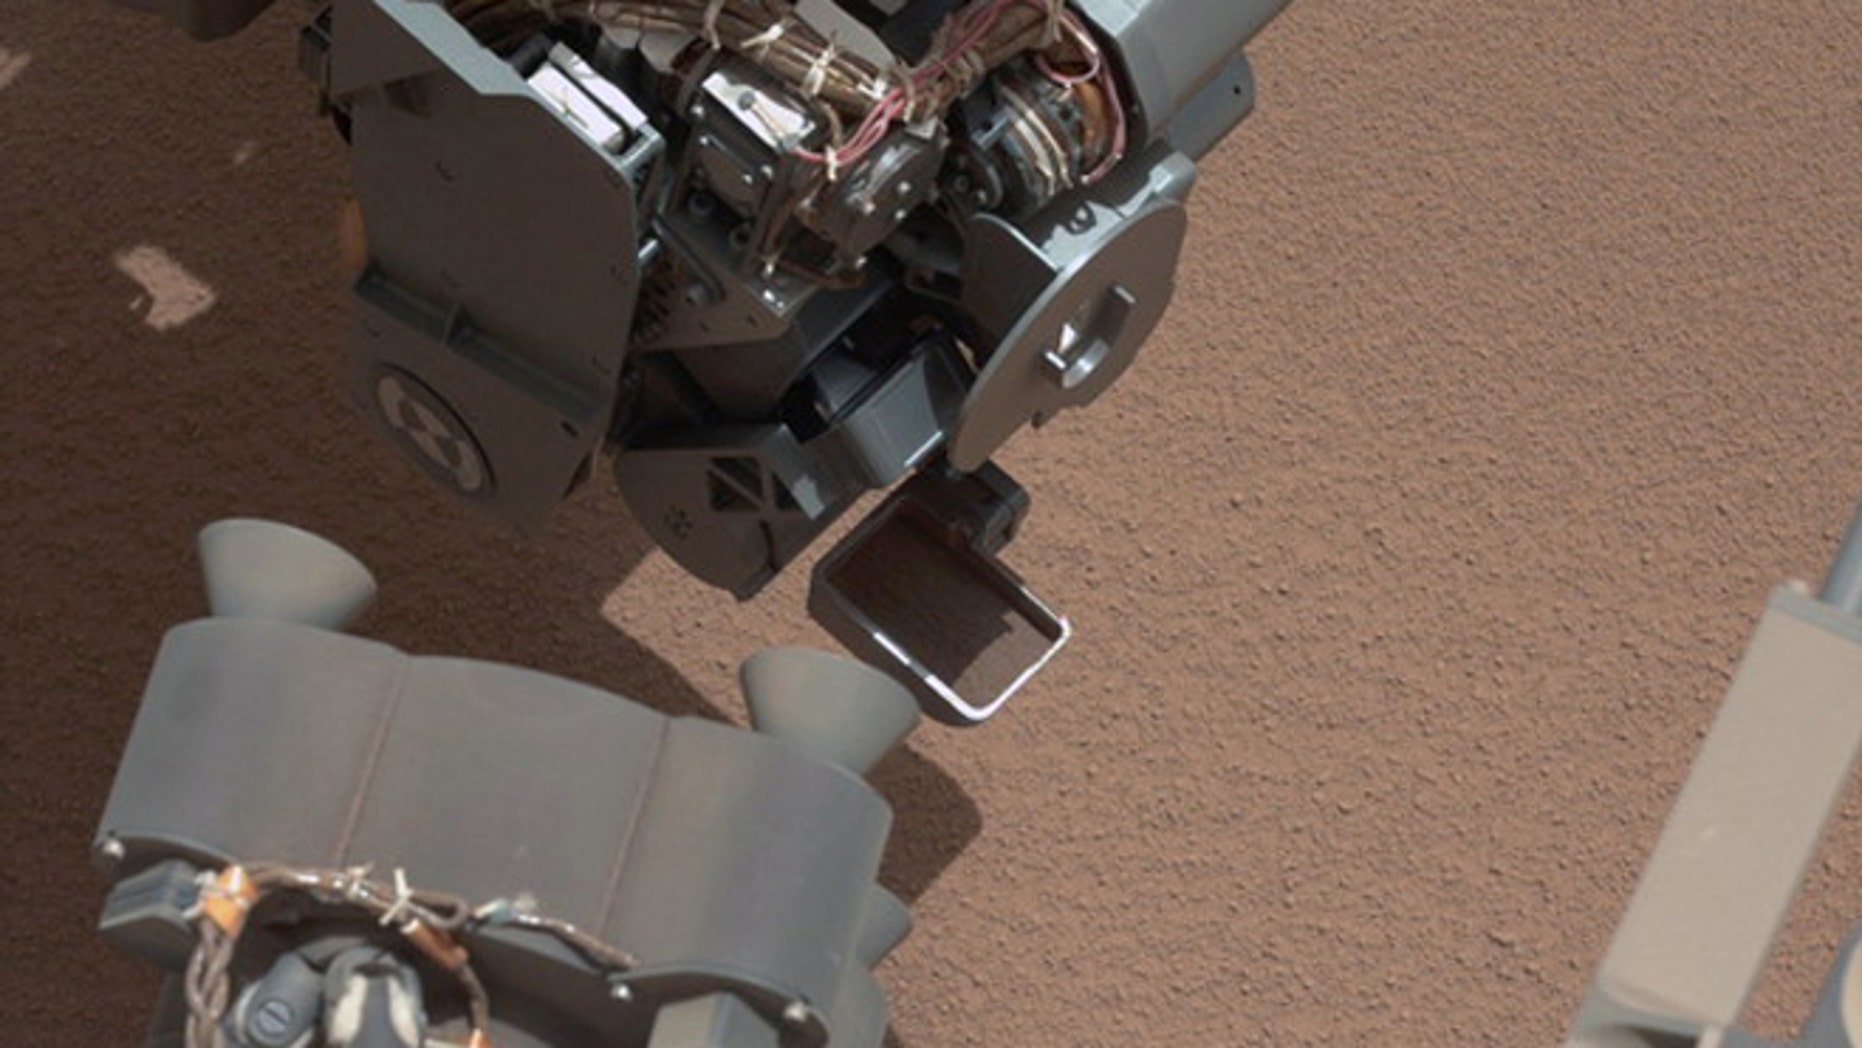 his image from the right Mast Camera (Mastcam) of NASA's Mars rover Curiosity shows a scoop full of sand and dust lifted by the rover's first use of the scoop on its robotic arm. In the foreground, near the bottom of the image, a bright object